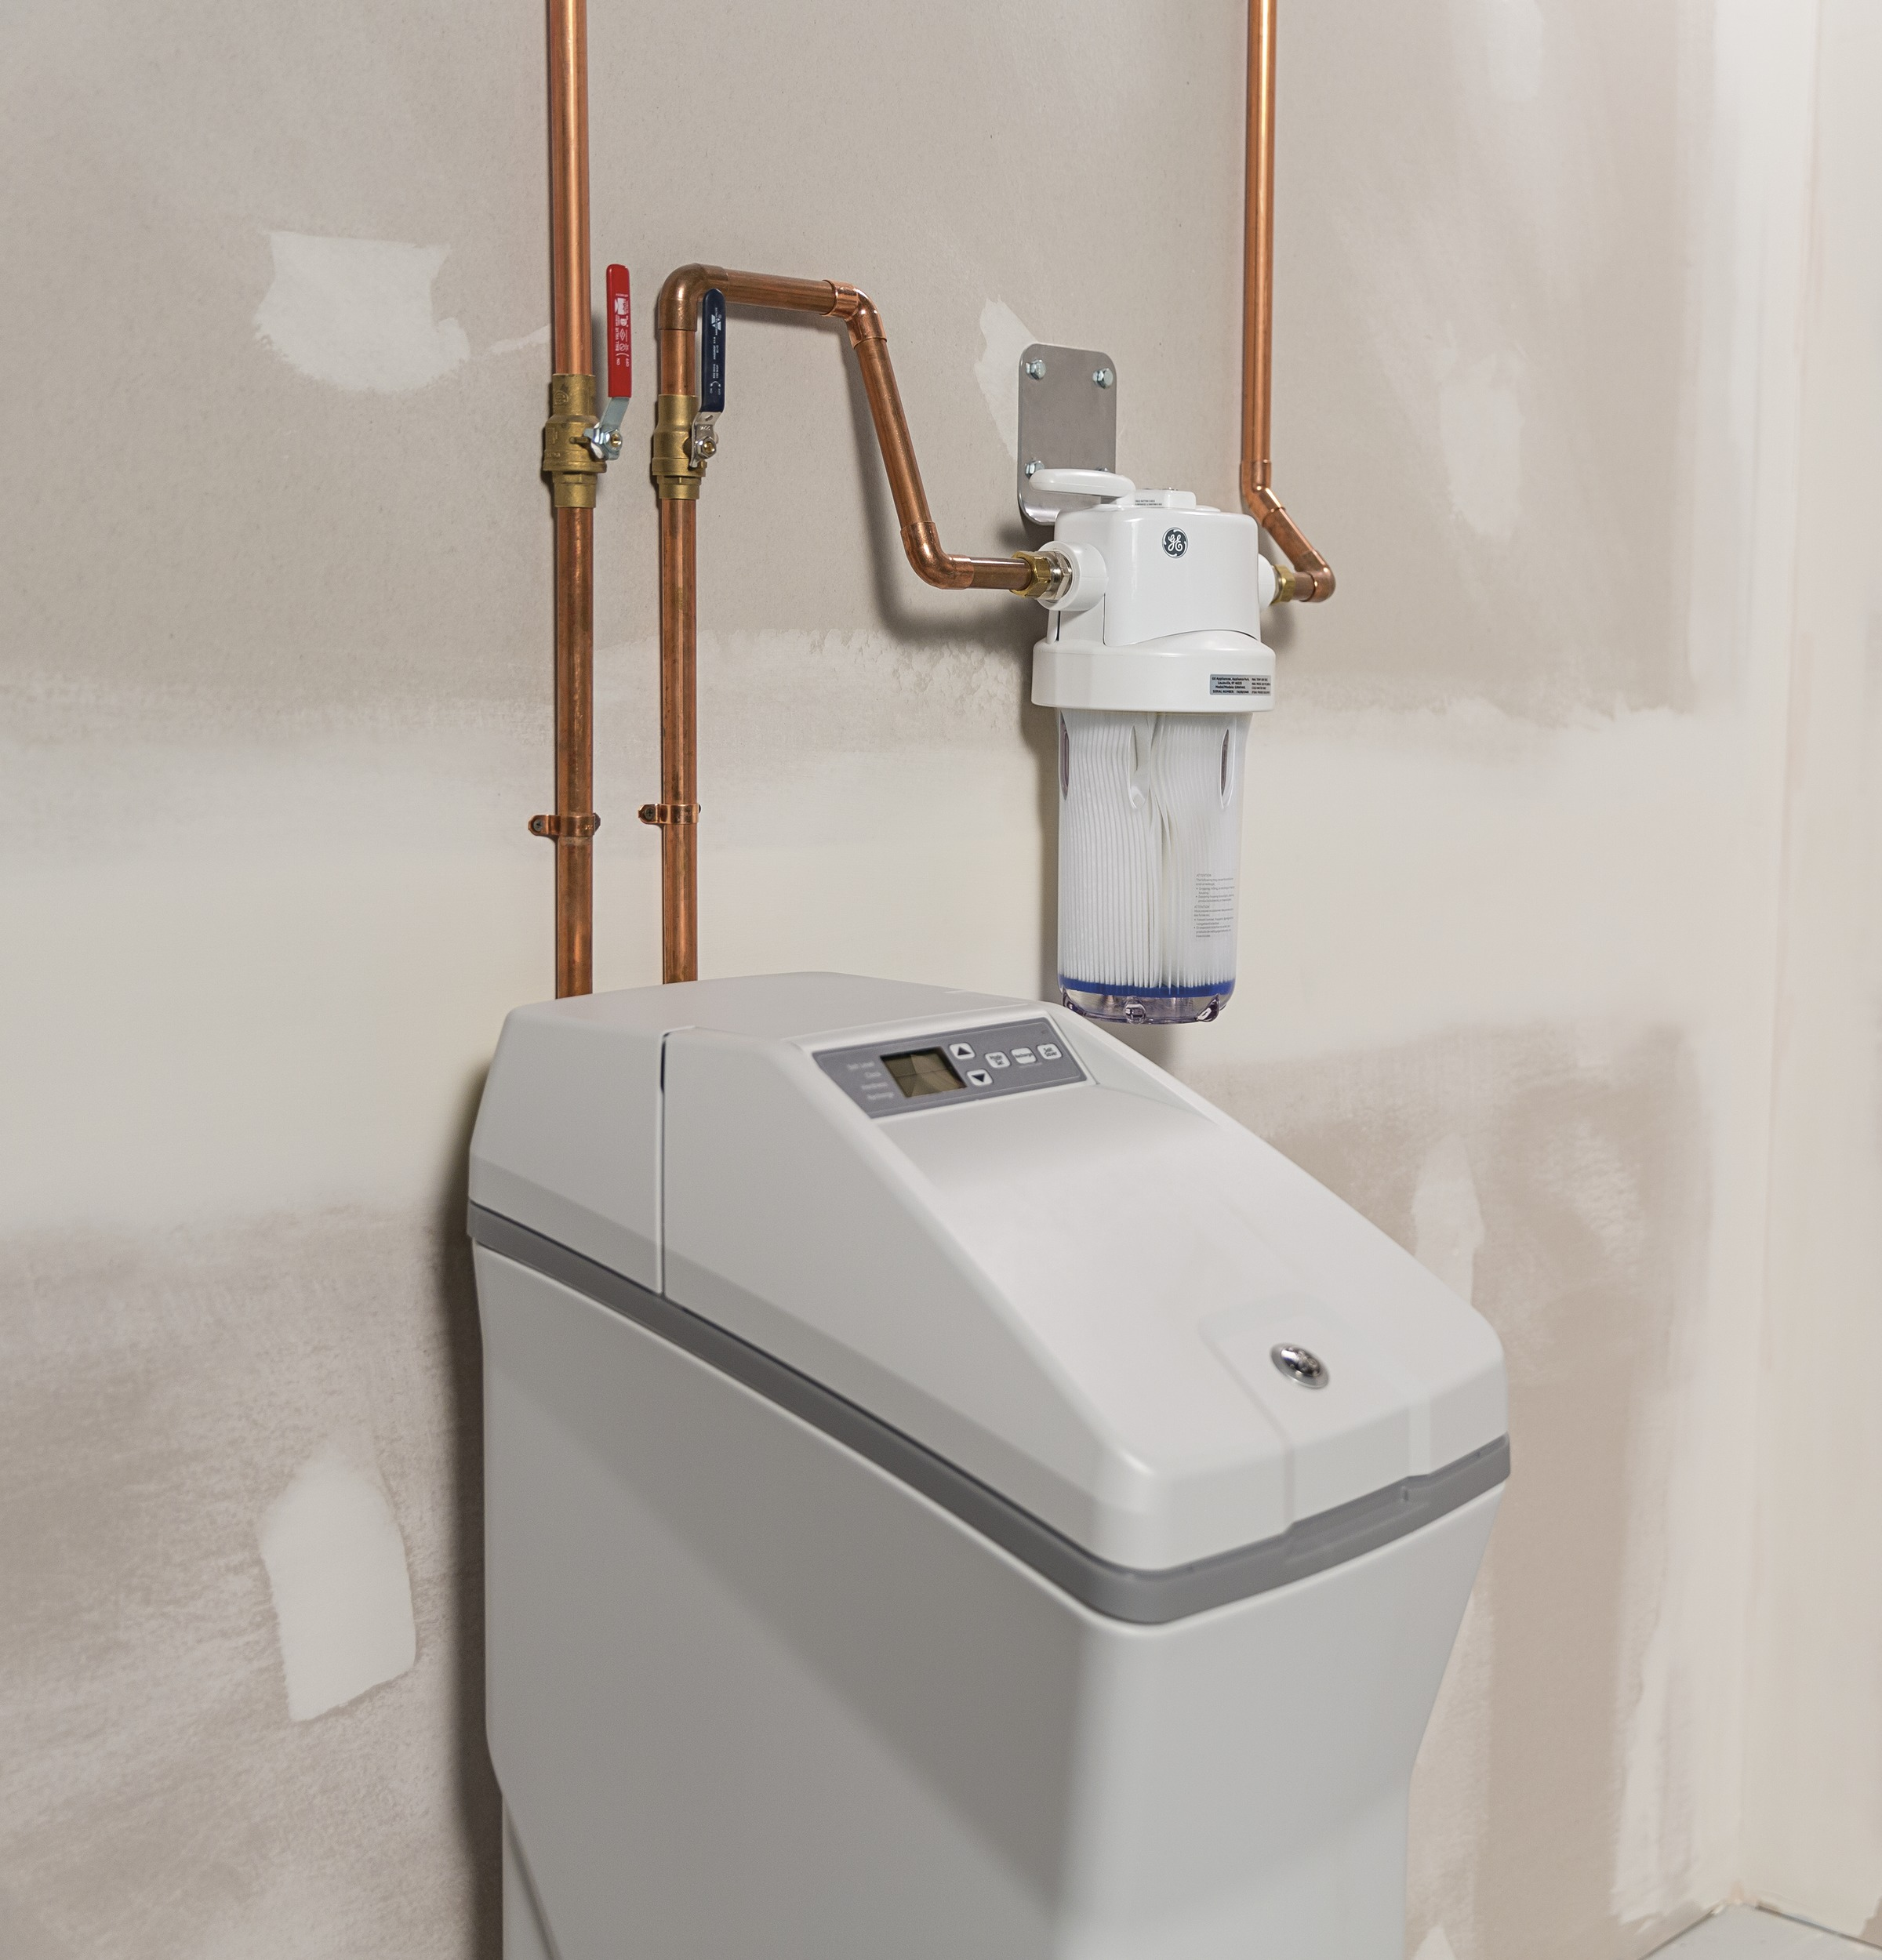 GE GXSH40V Water Softener - In real life from a side